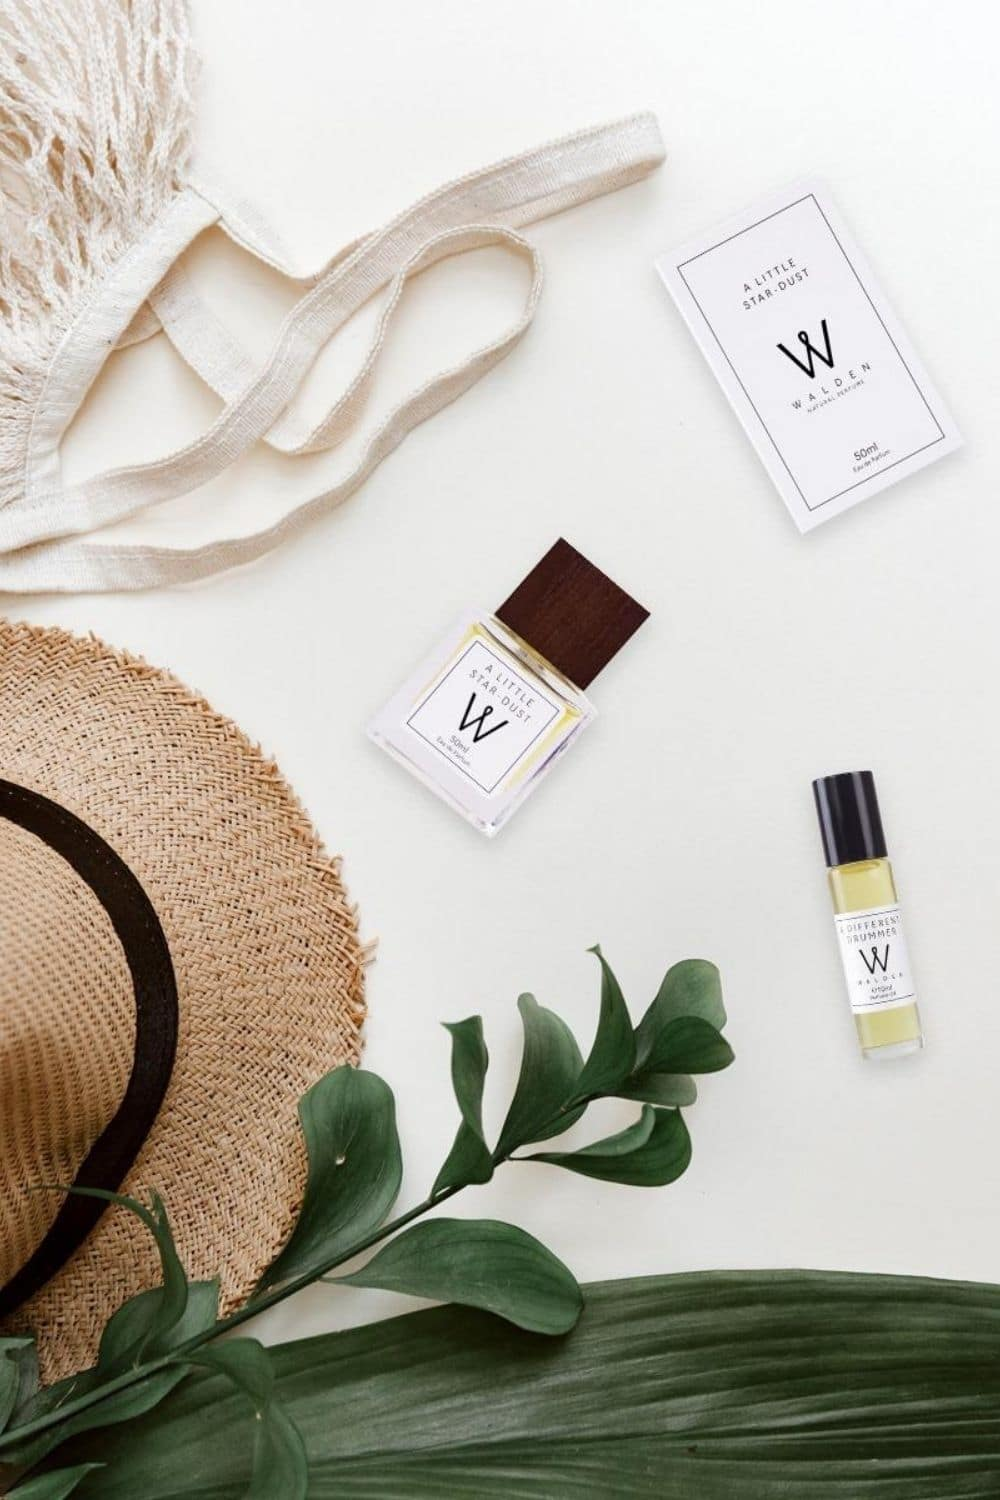 In today's world of eco conscious beauty, there are so many cruelty free perfume brands (that are also vegan) popping up and promoting a brave new world of sustainable beauty scents. Image by Walden Perfumes #crueltyfreeperfume #sustainablebeauty